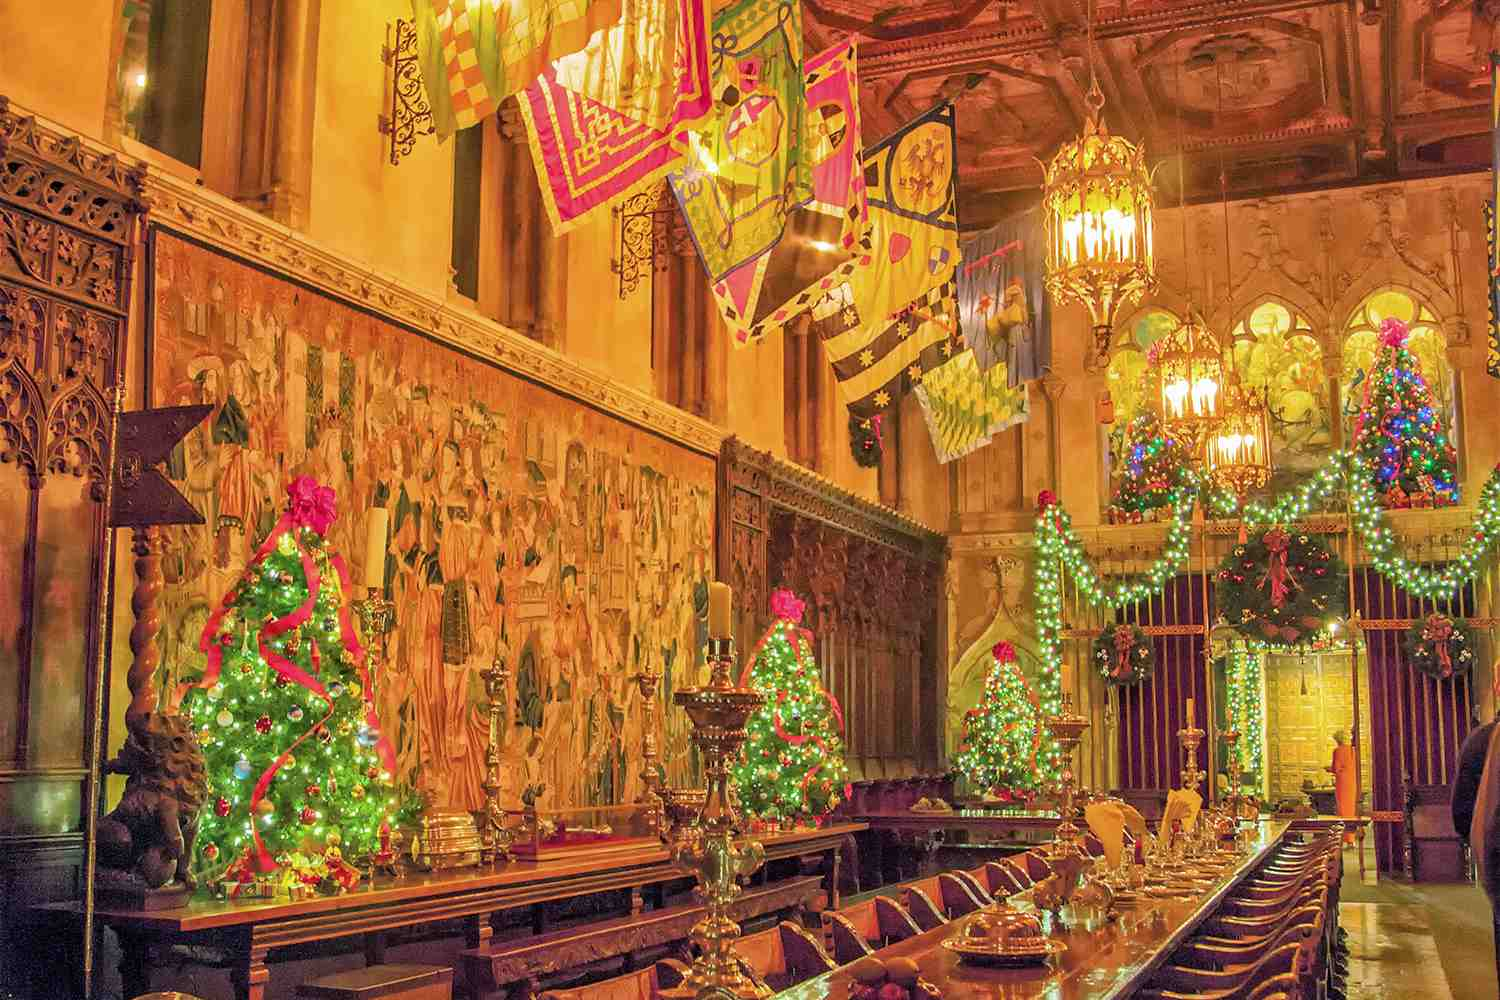 Hearst Castle Dining Room Decorated for Christmas